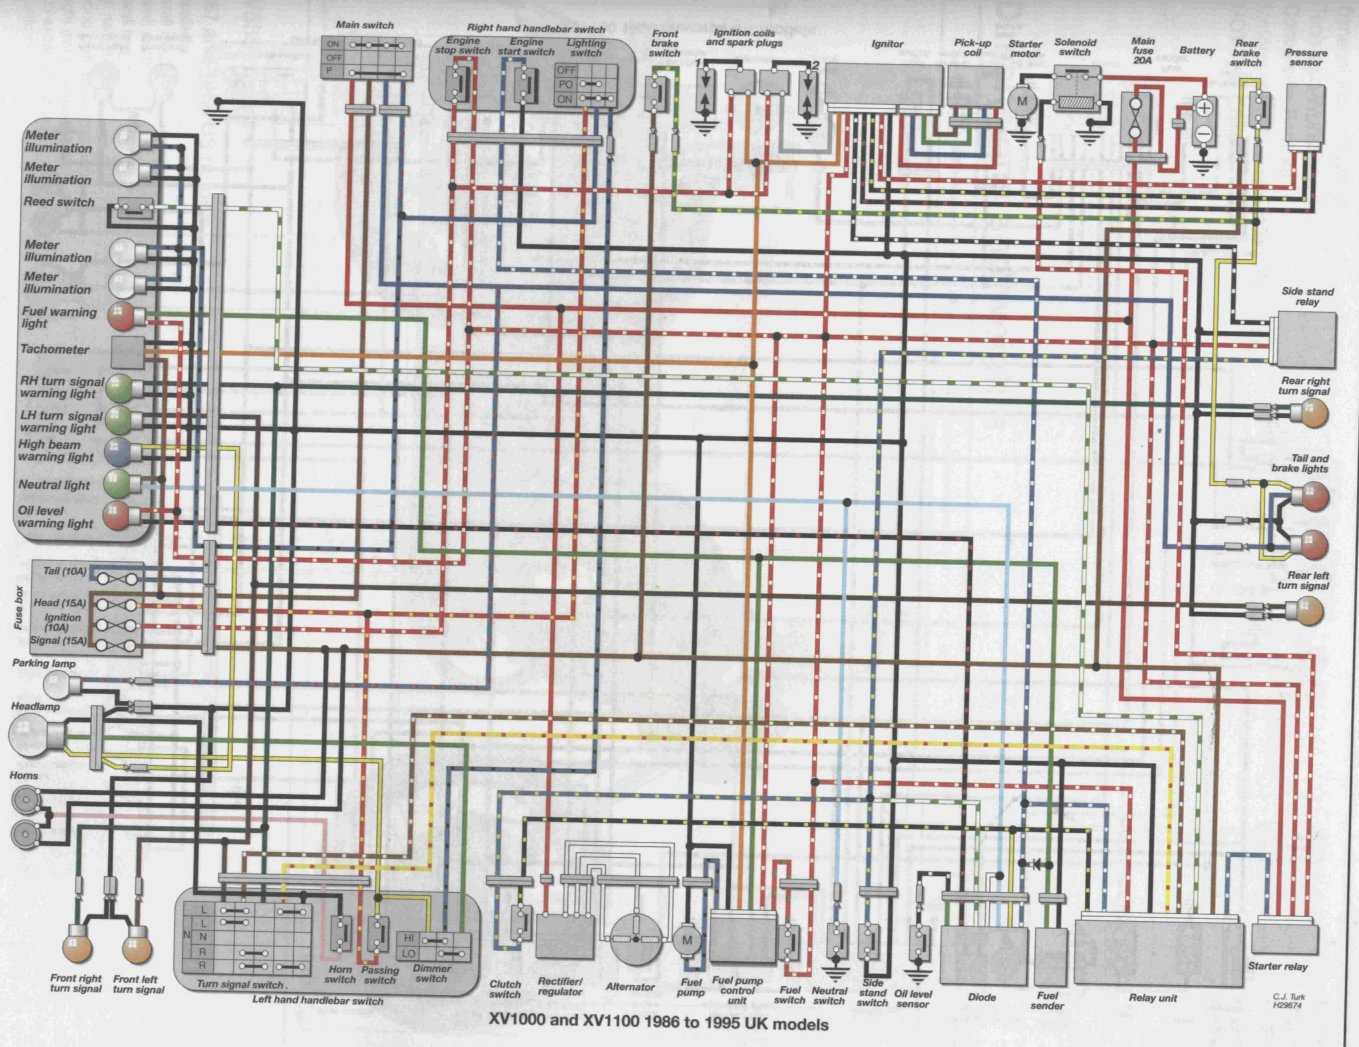 86_95_uk_XV1000_XV1100 index of wiring 2006 yamaha fz6 wiring diagram at eliteediting.co